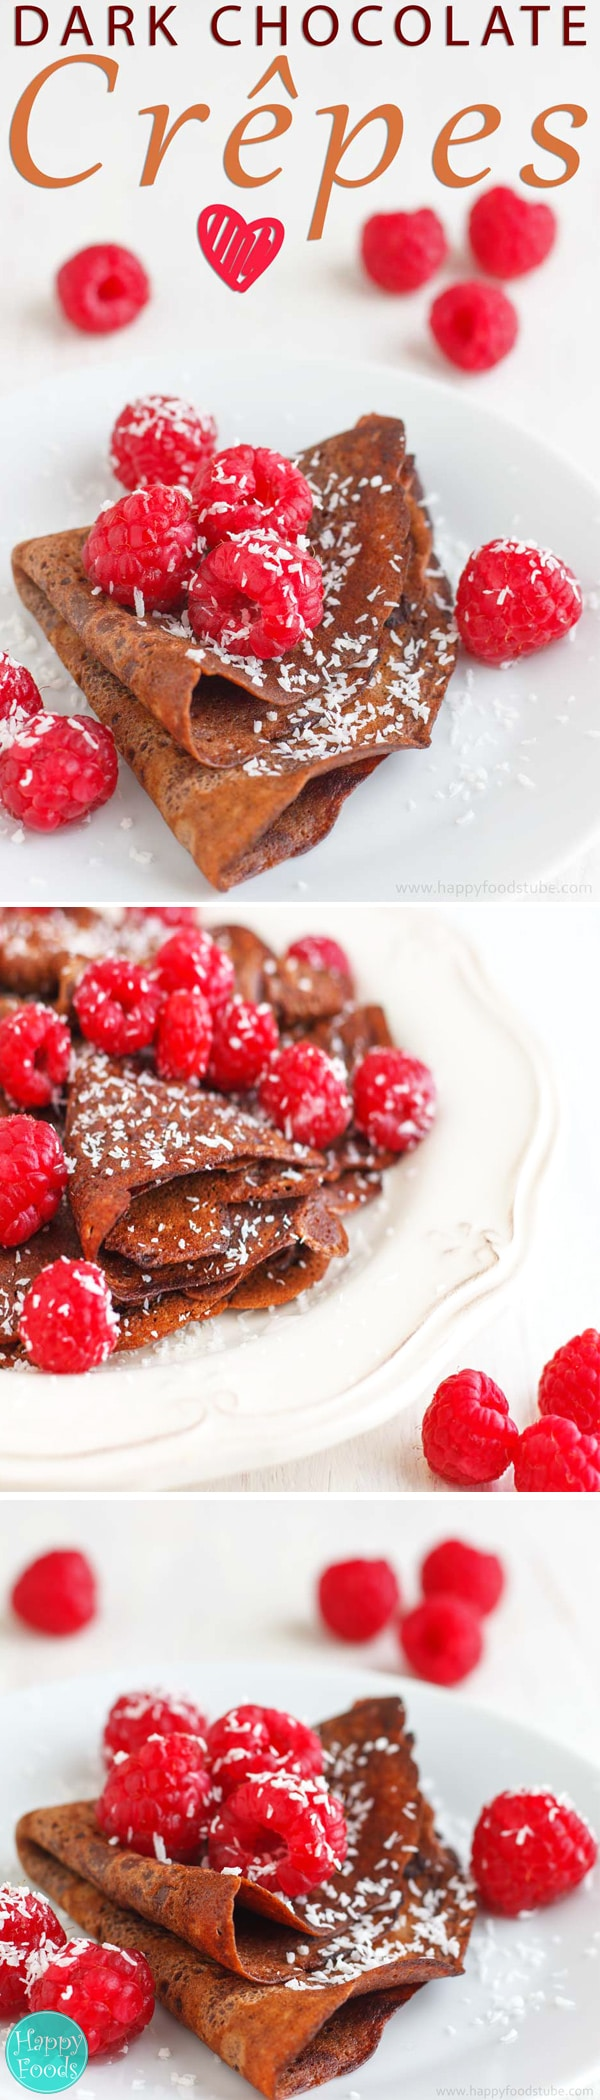 Dark Chocolate Crepes Recipe Happy Foods Tube